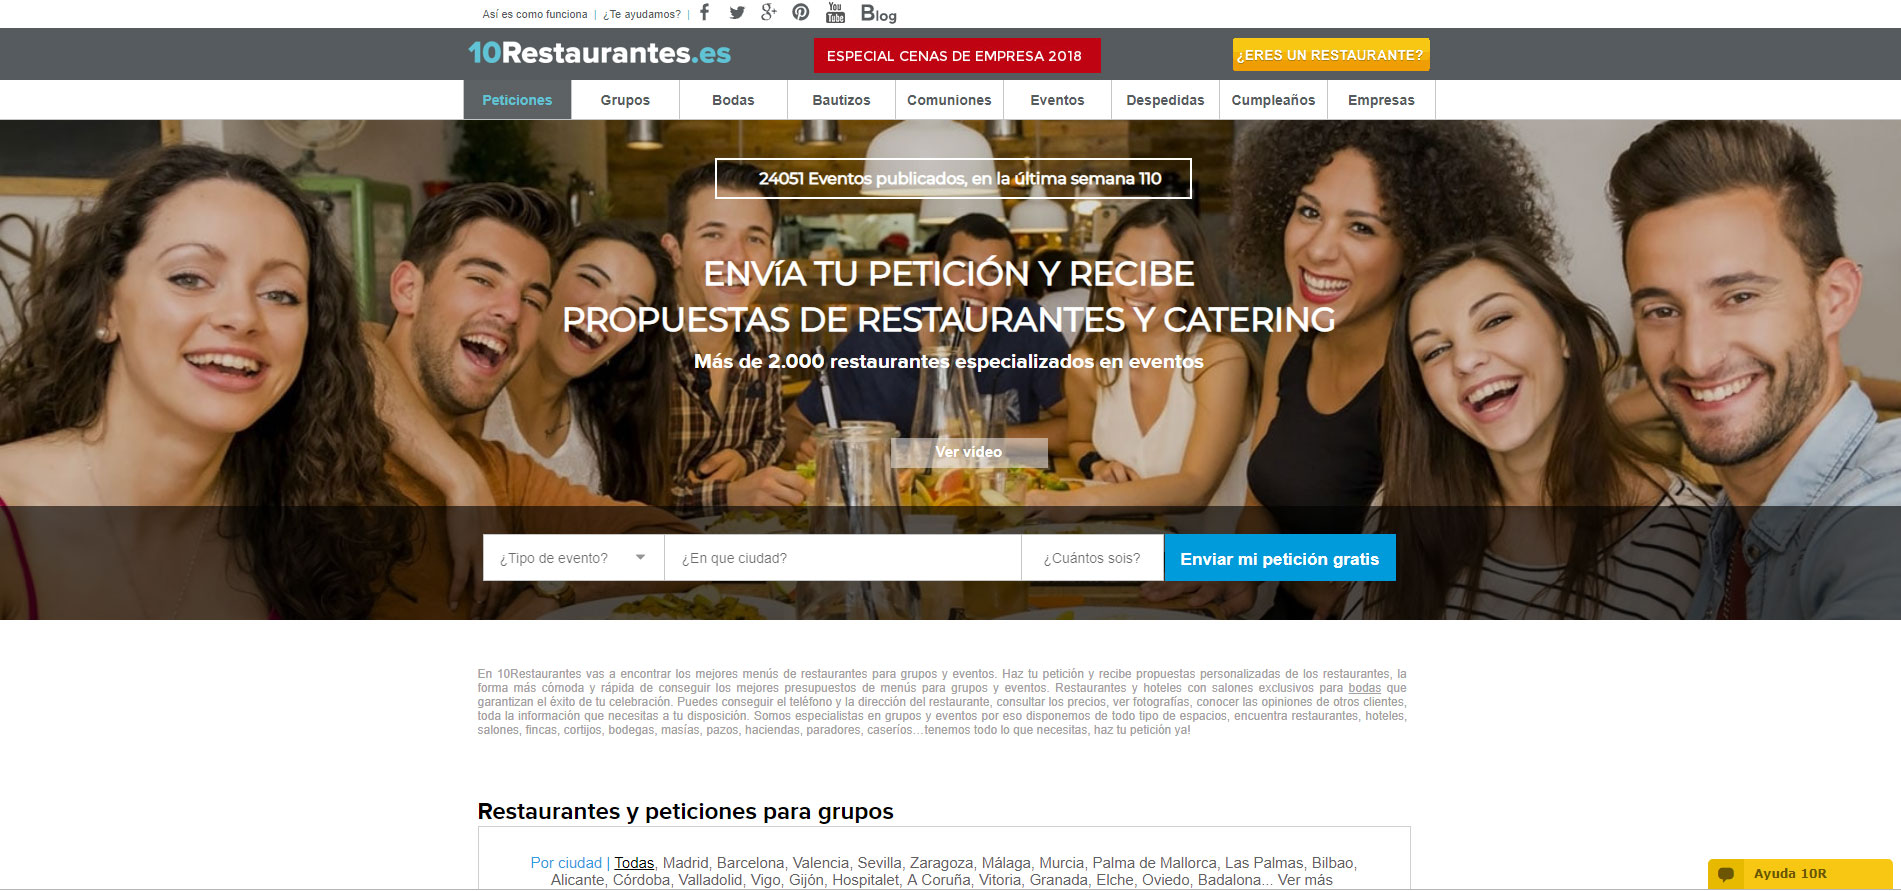 You can access the web 10Restaurantes.com, specializing in restaurants for groups and events; wedding, christenings, communions, business scene, etc., making your request, receive proposal restaurants and talk directly with them through this application on the needs of your event. It is easy, Fast and free.